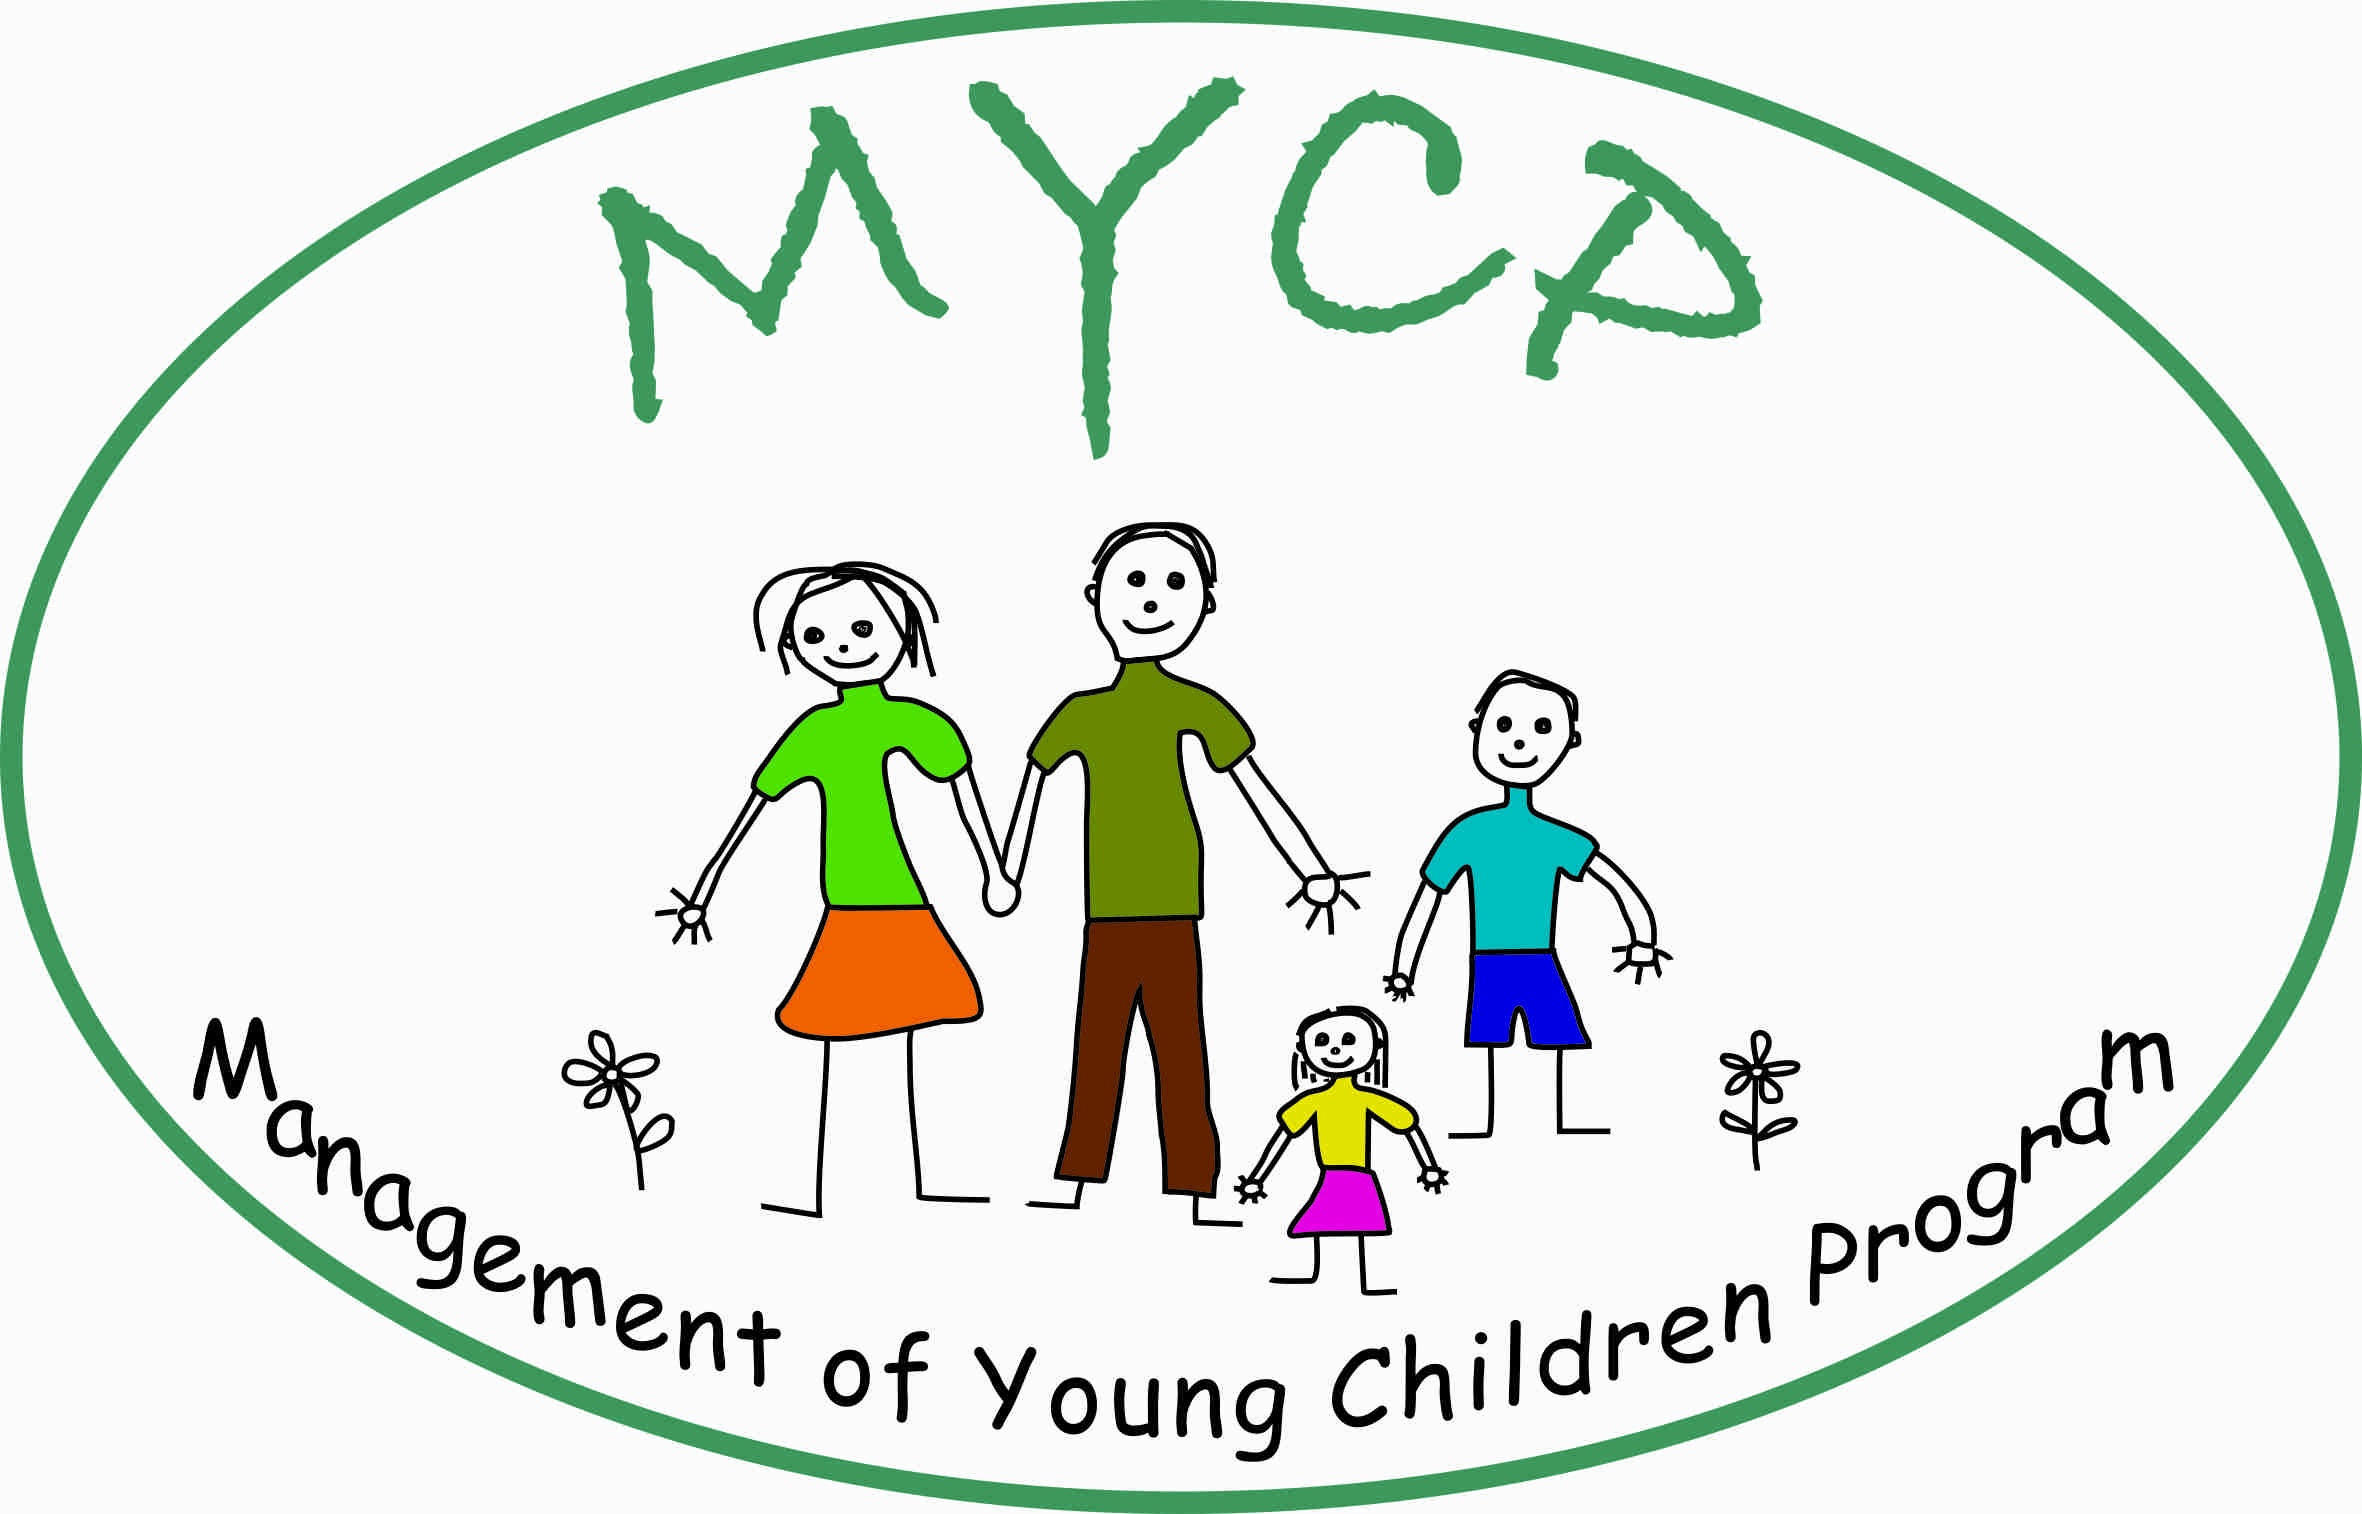 Managing Young Children's Program